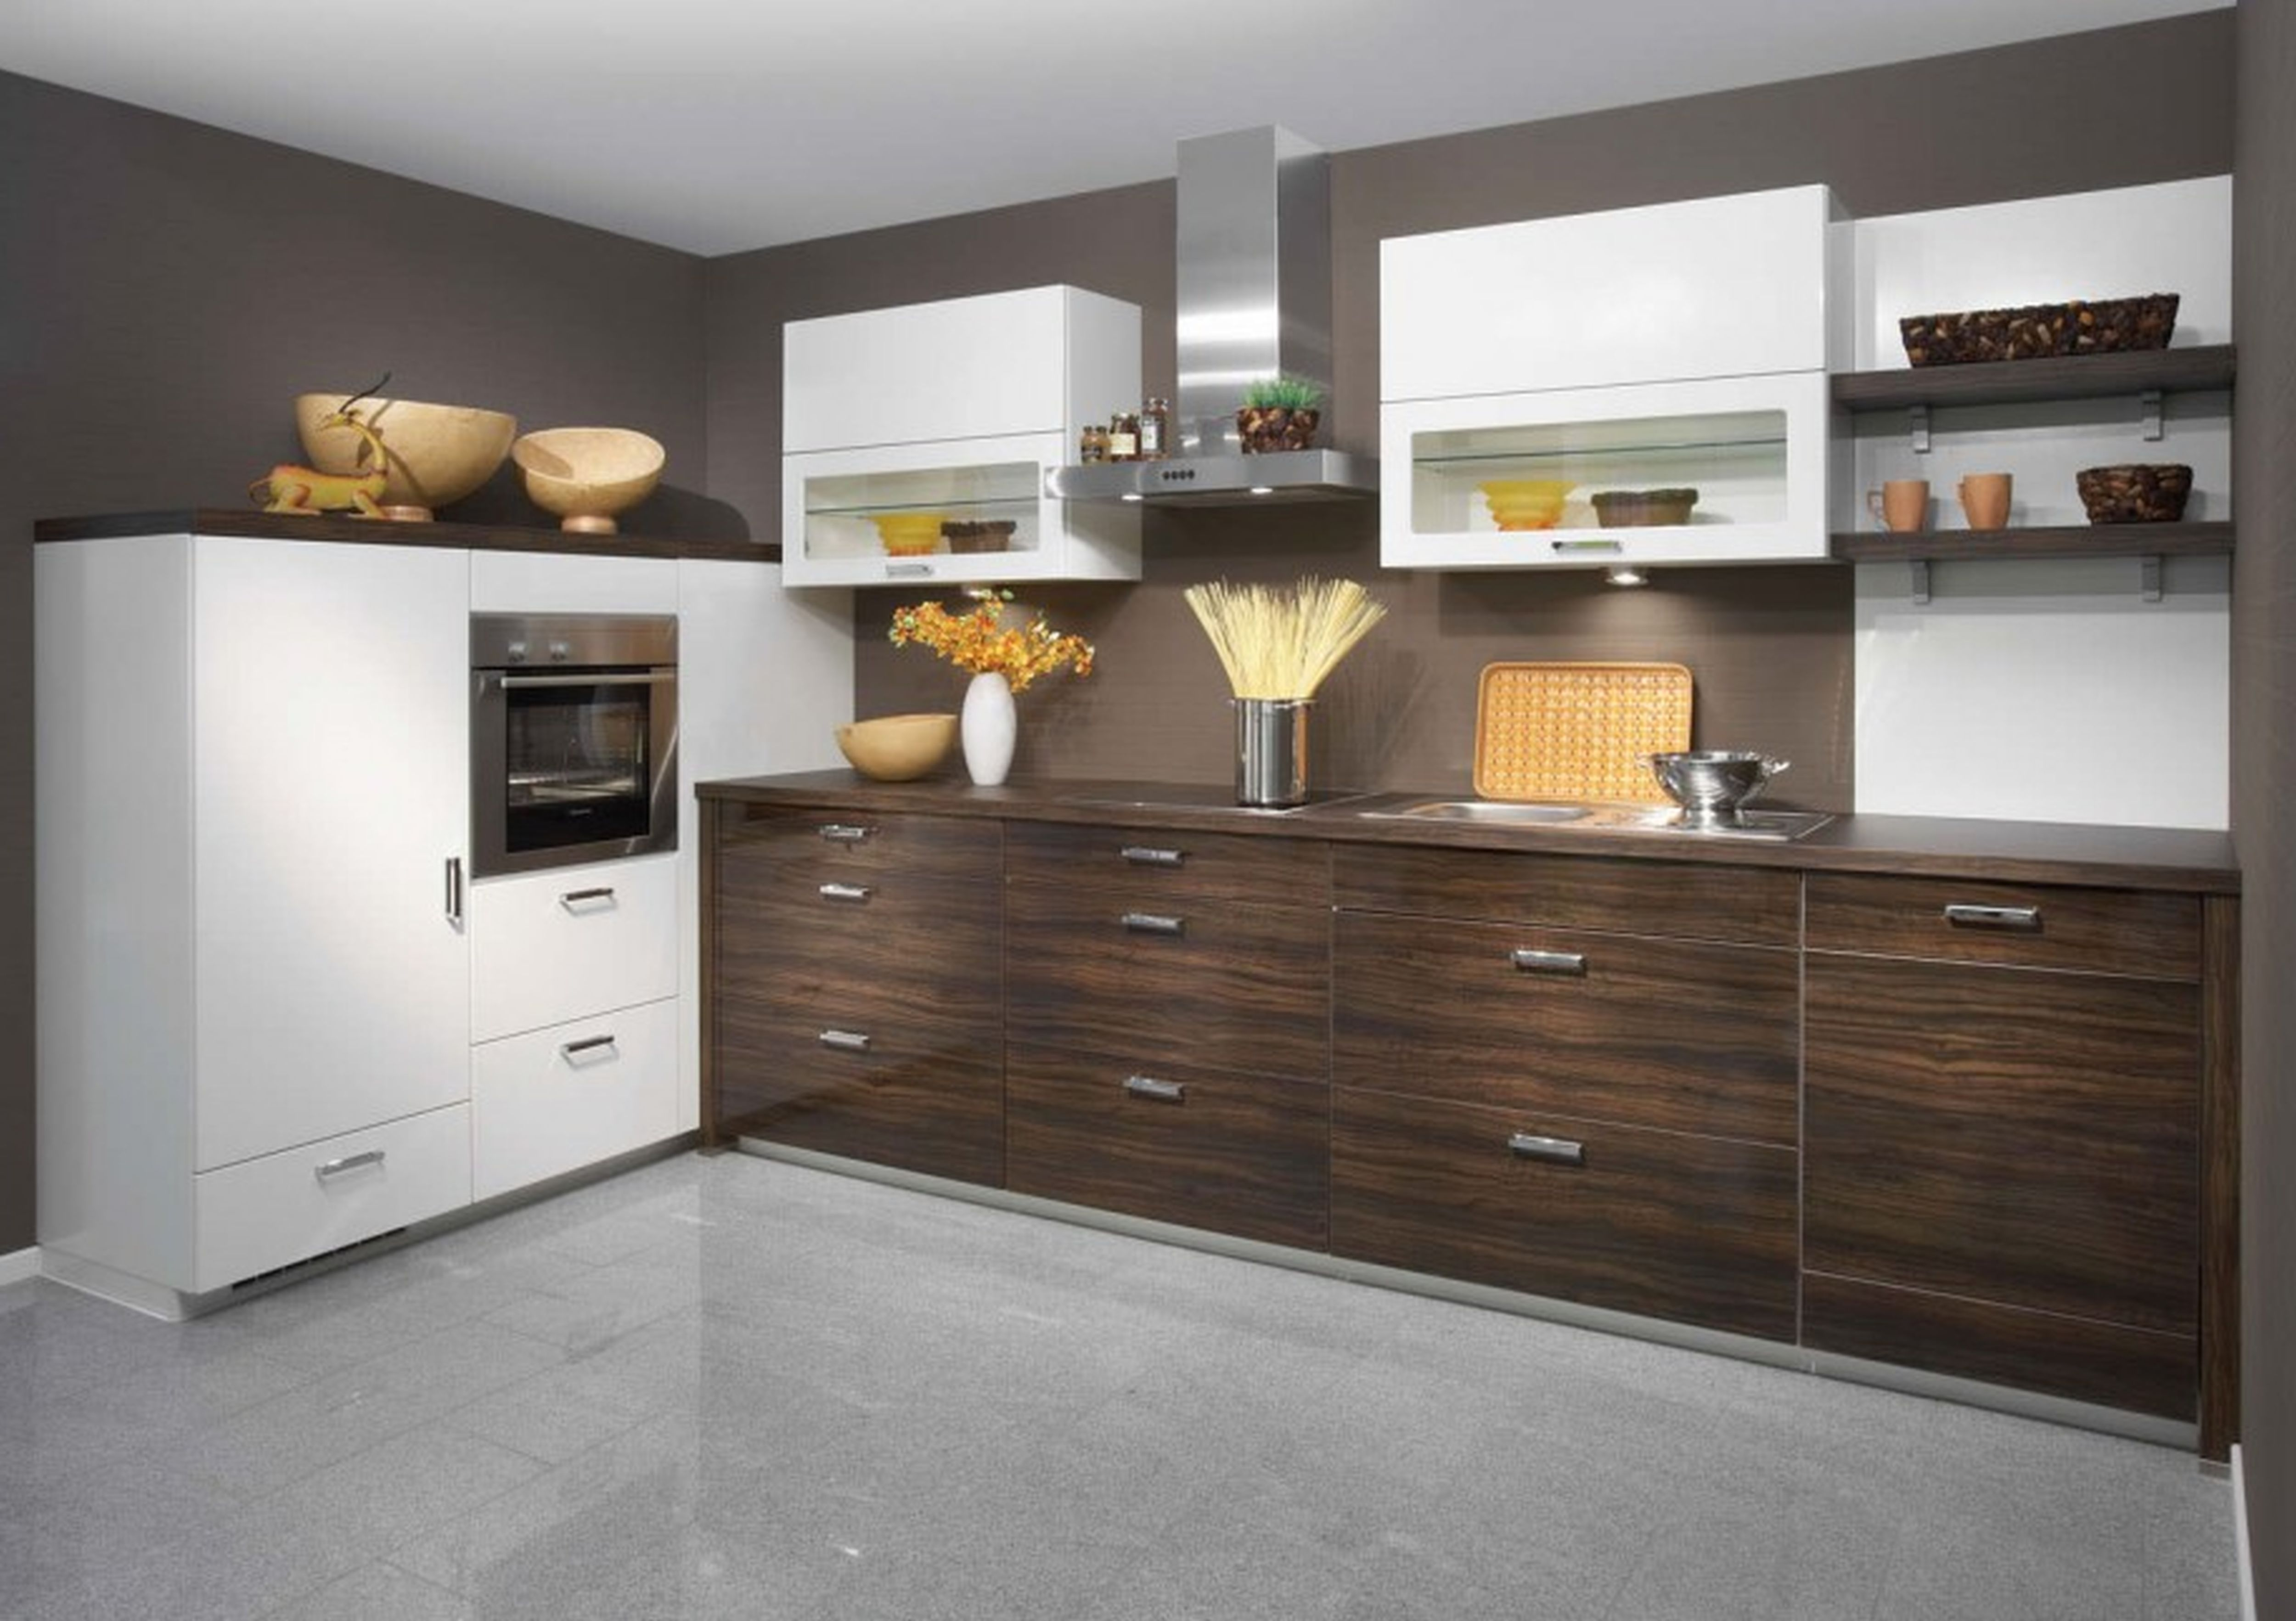 Best Ever L Shaped Kitchen Design India Decor Design Ideas In Hd